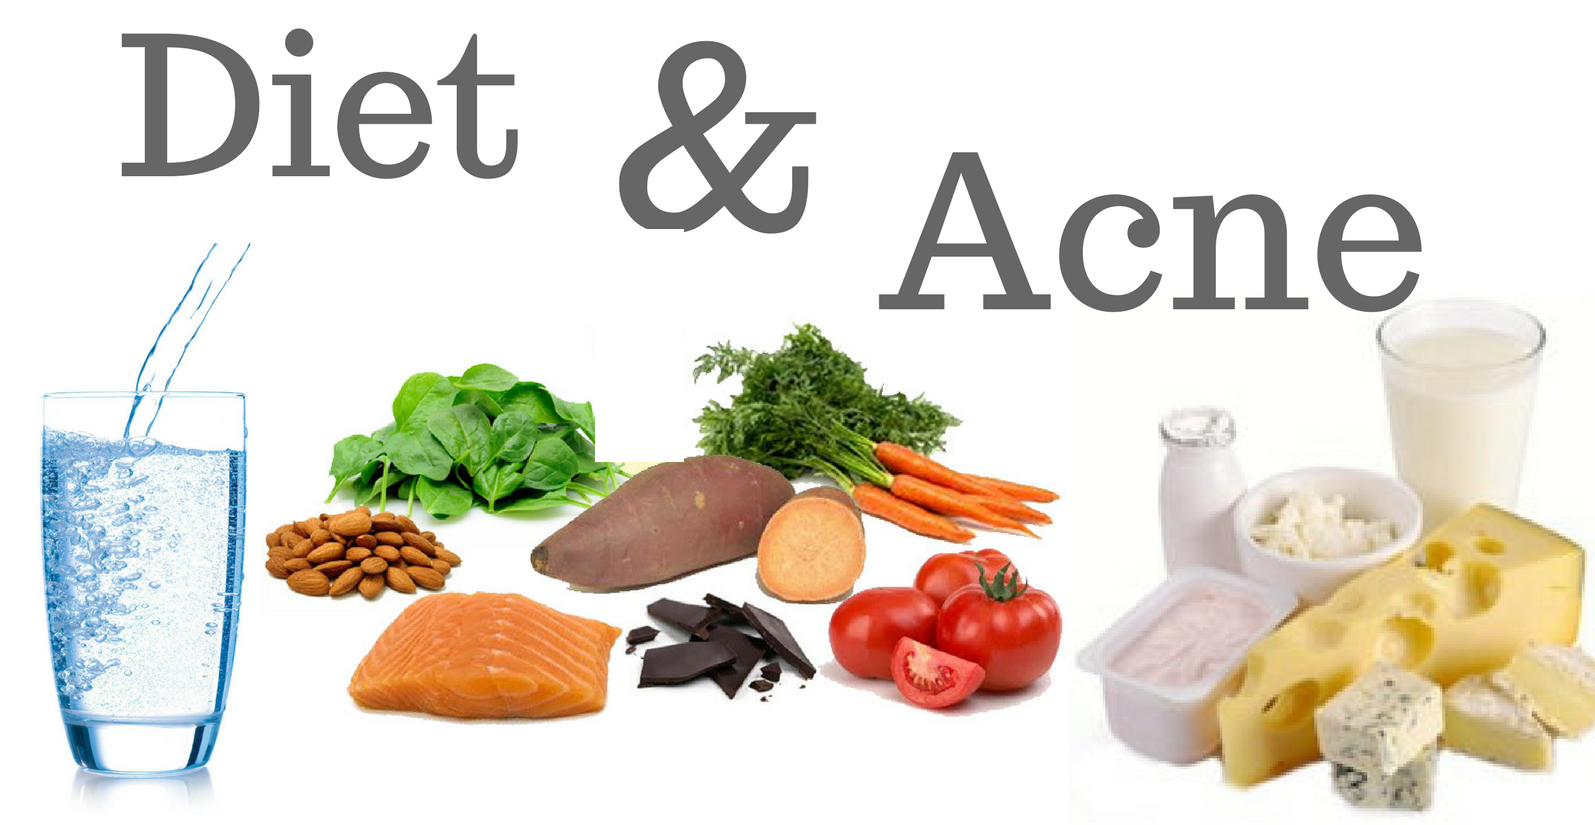 What is the role of diet in acne